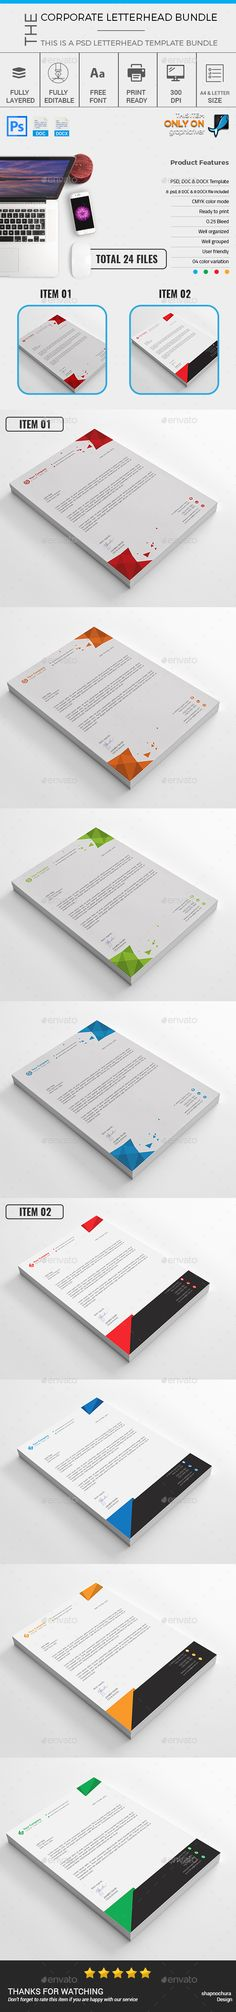 Corporate Letterhead Template Bundle - MS Word, PSD Letterhead - letterhead samples word